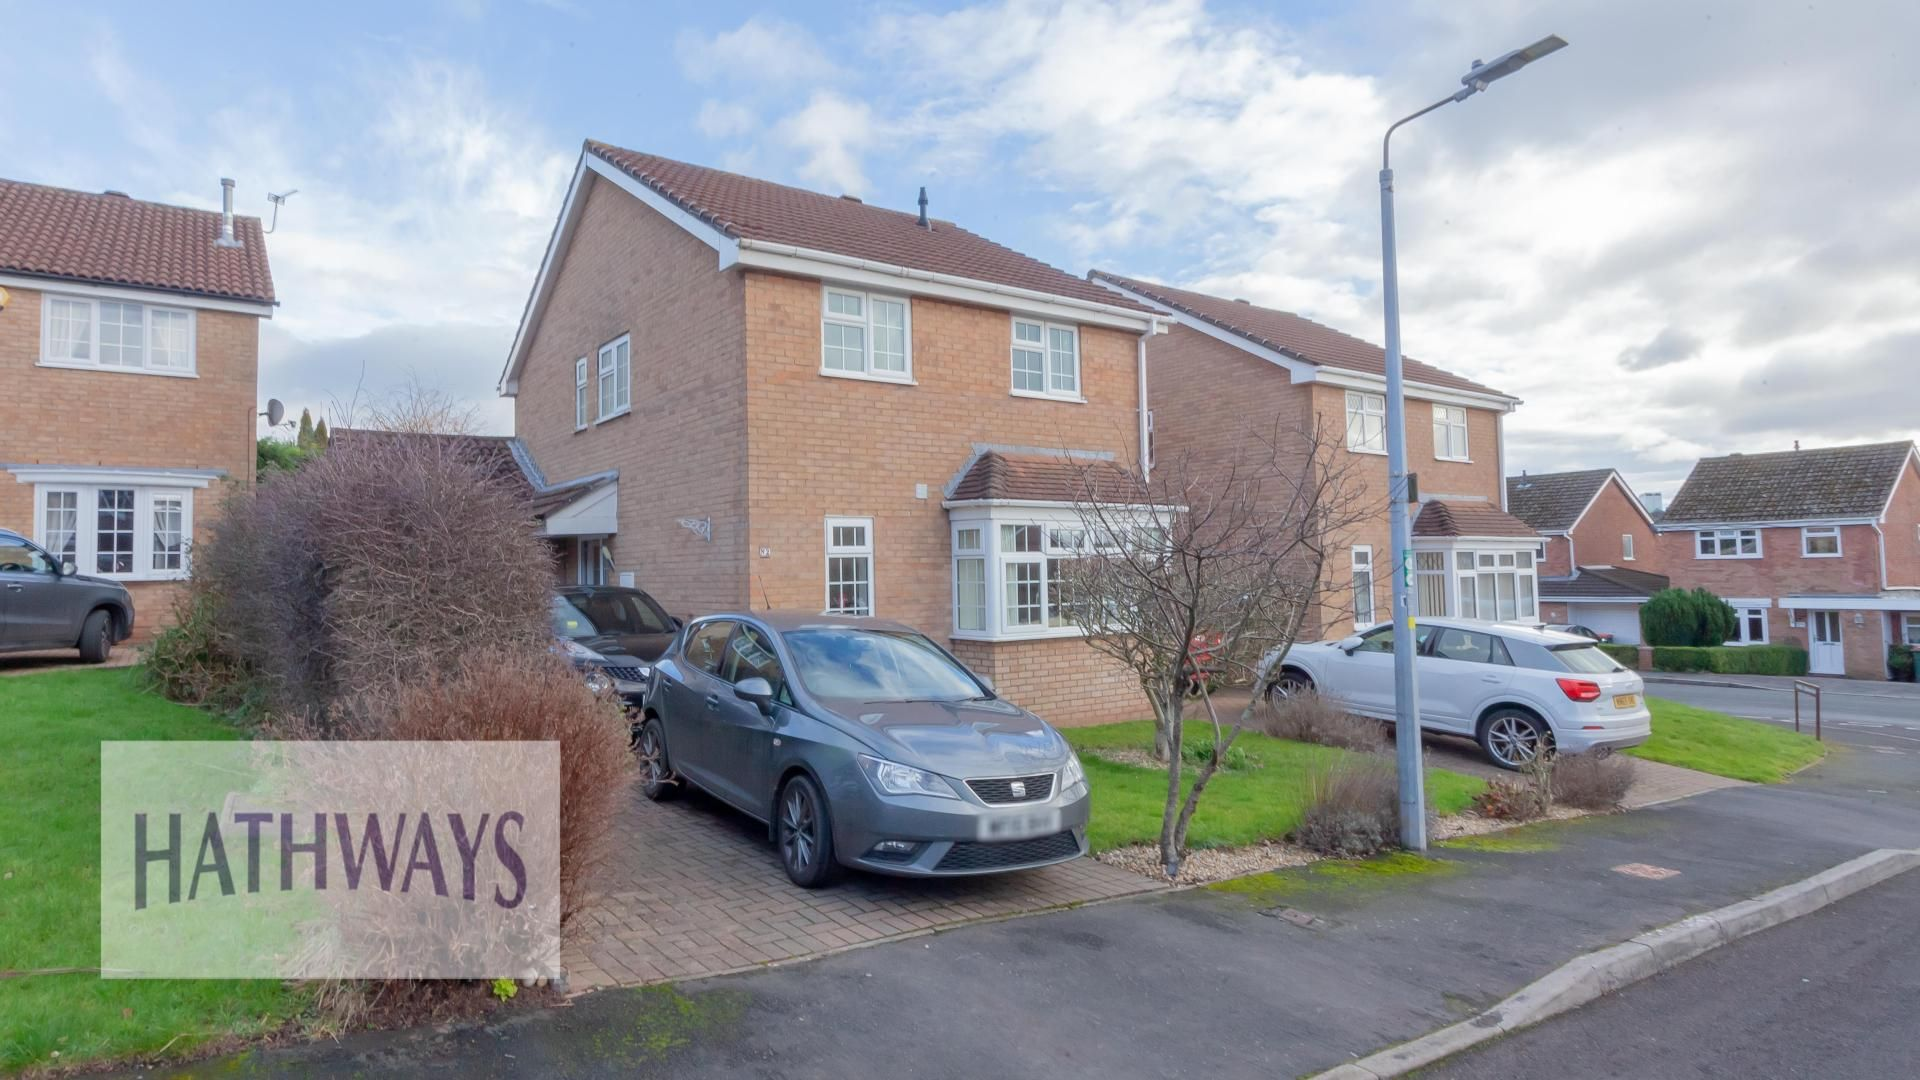 4 bed house for sale in Box Tree Close, NP18